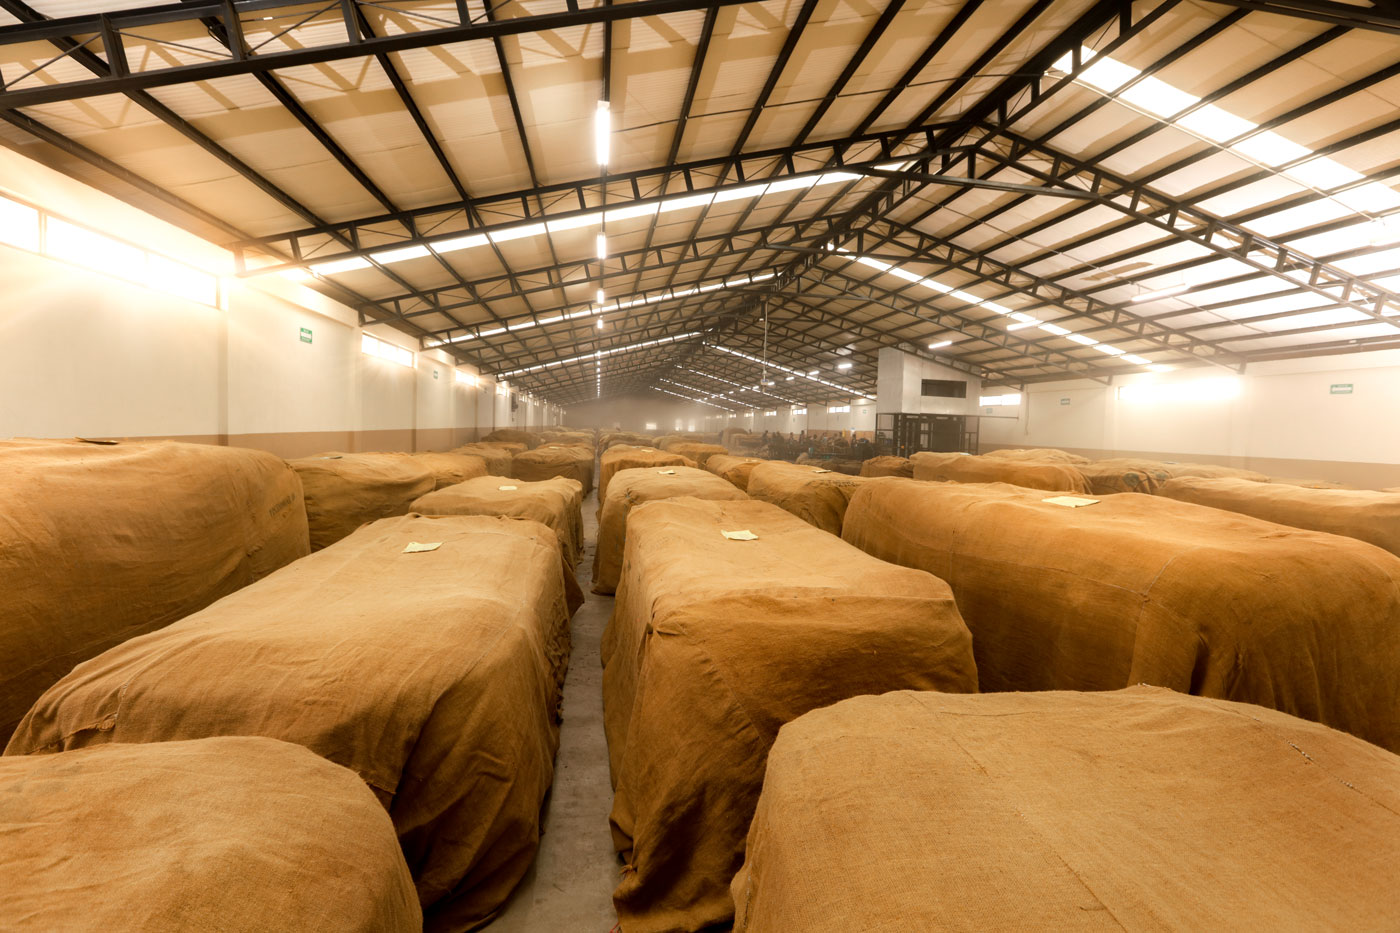 Fermenting Tobacco in Pilón's